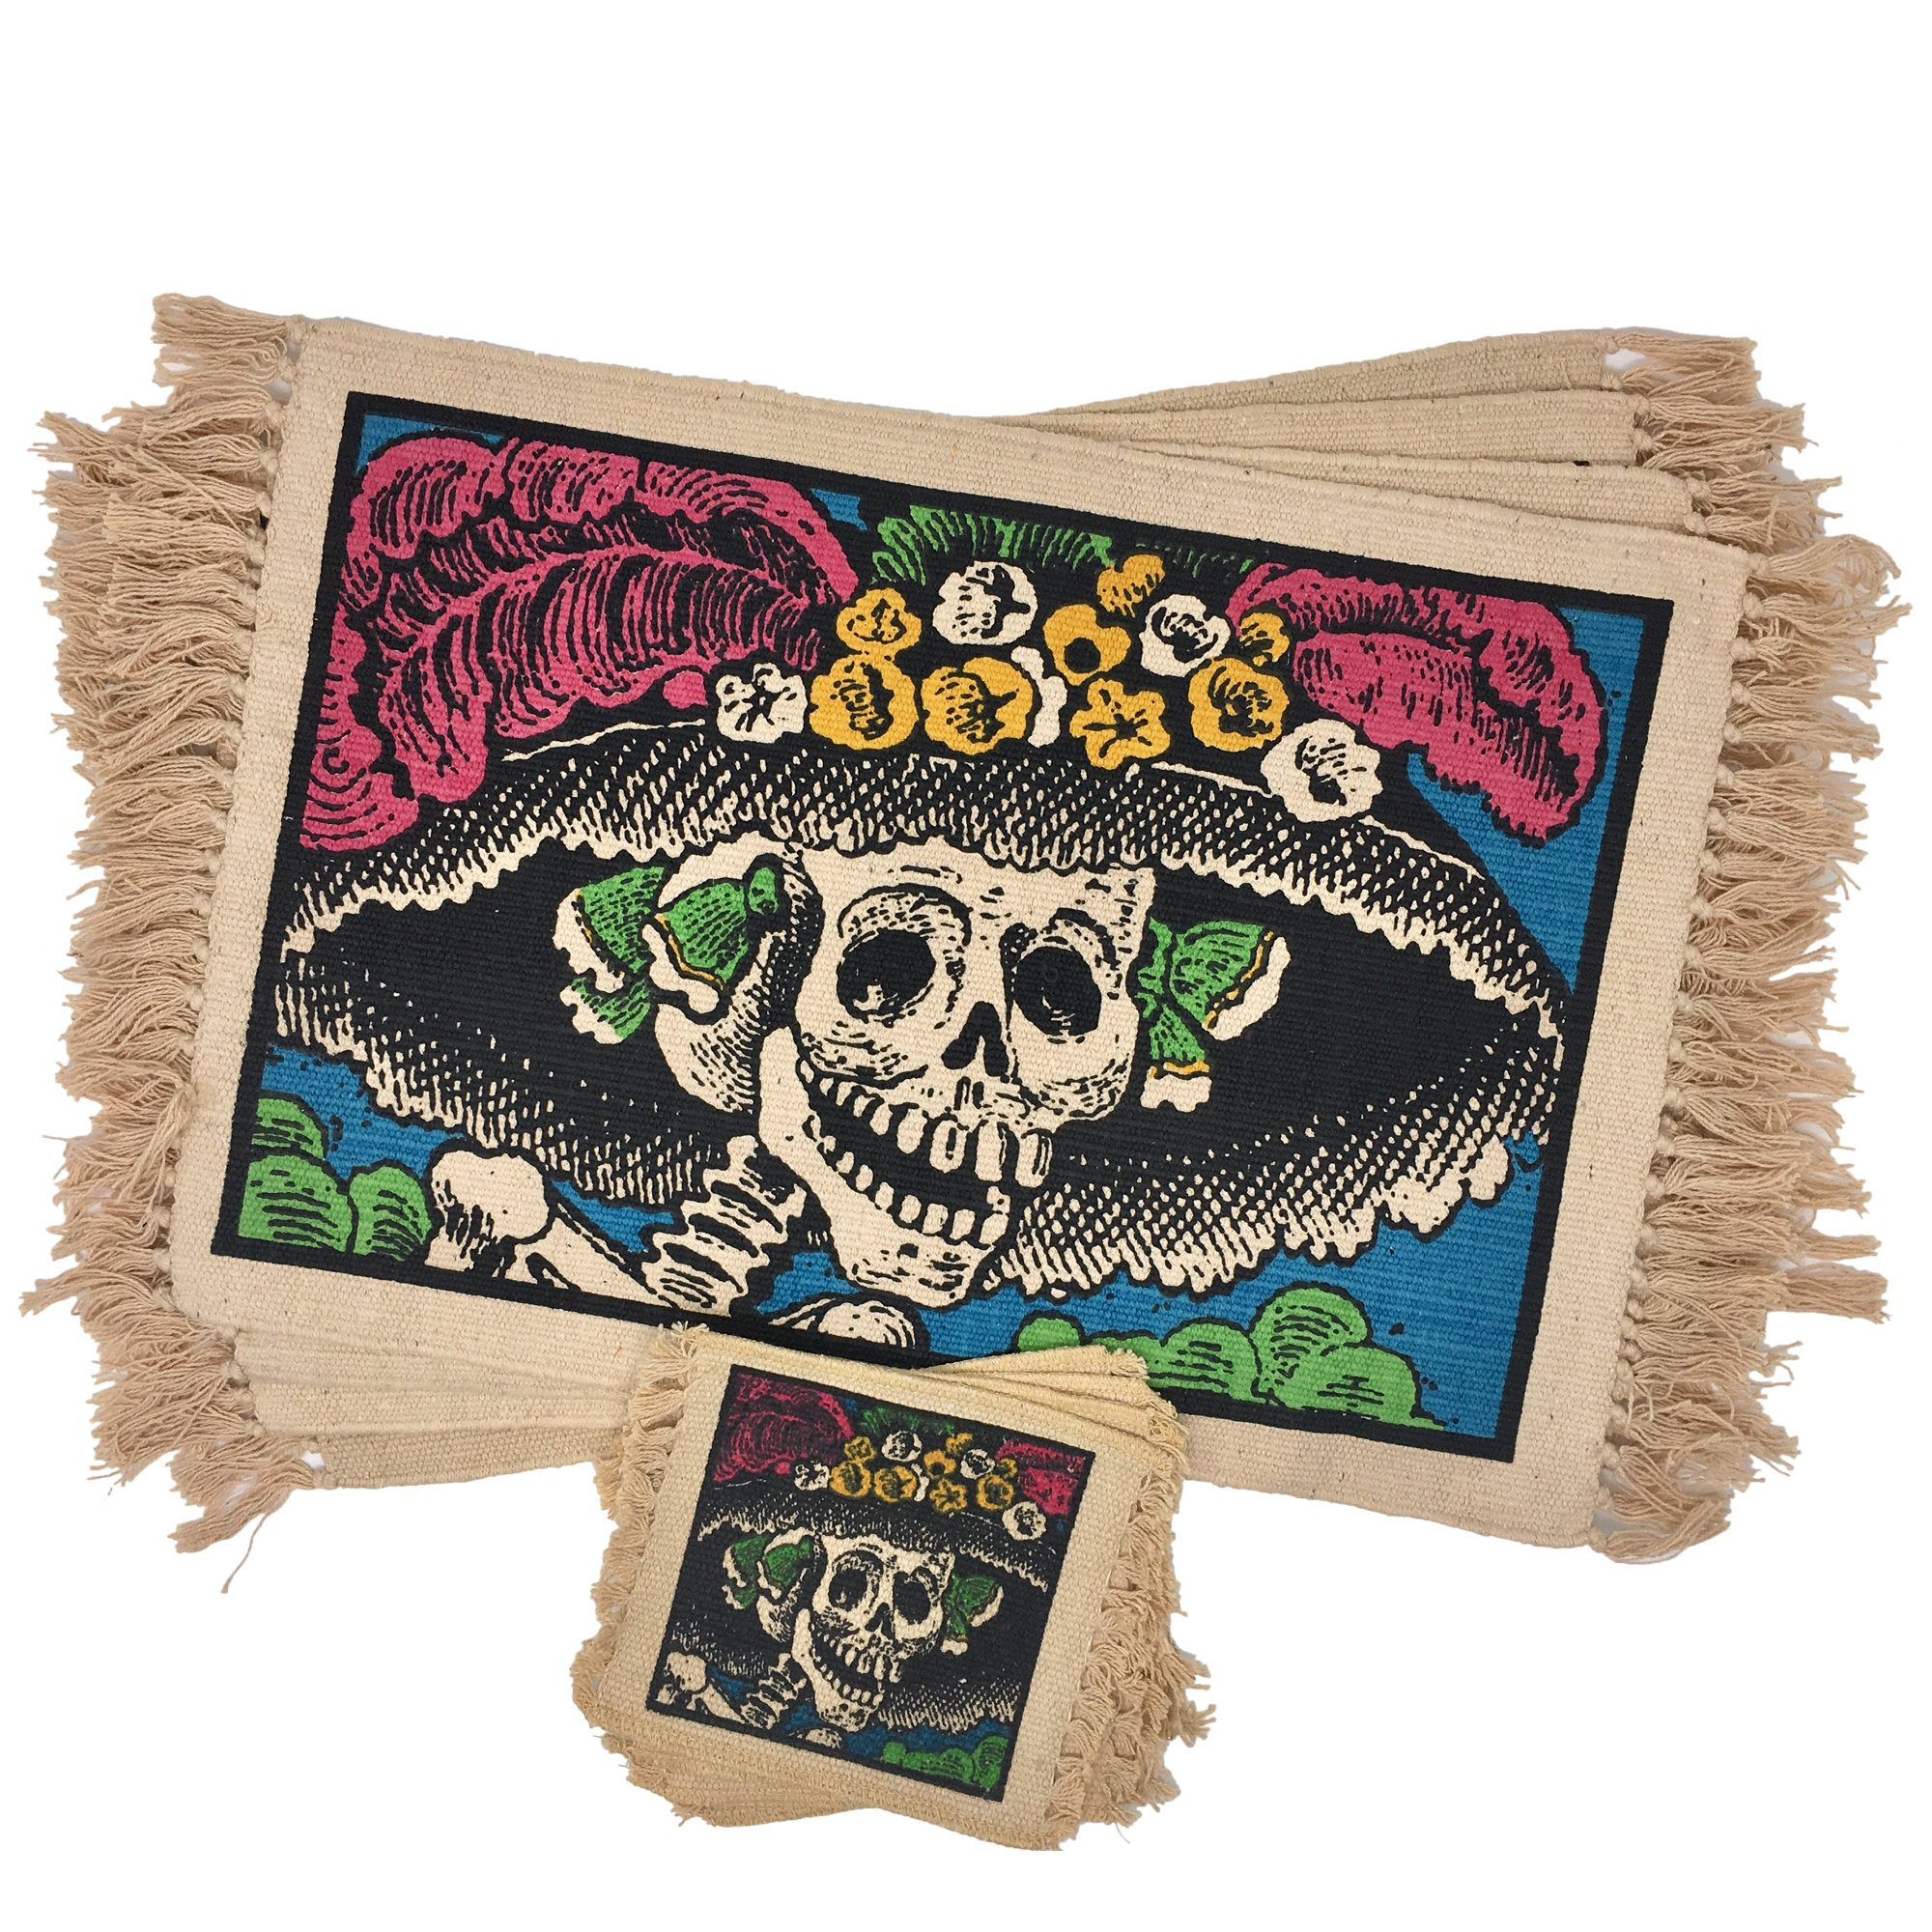 SpiritFest Sugar Skull Placemats & Coasters: Set of 8 Day of the Dead Kitchen & Dining Table Decor Made with 100% Washable Cotton (Catrina)